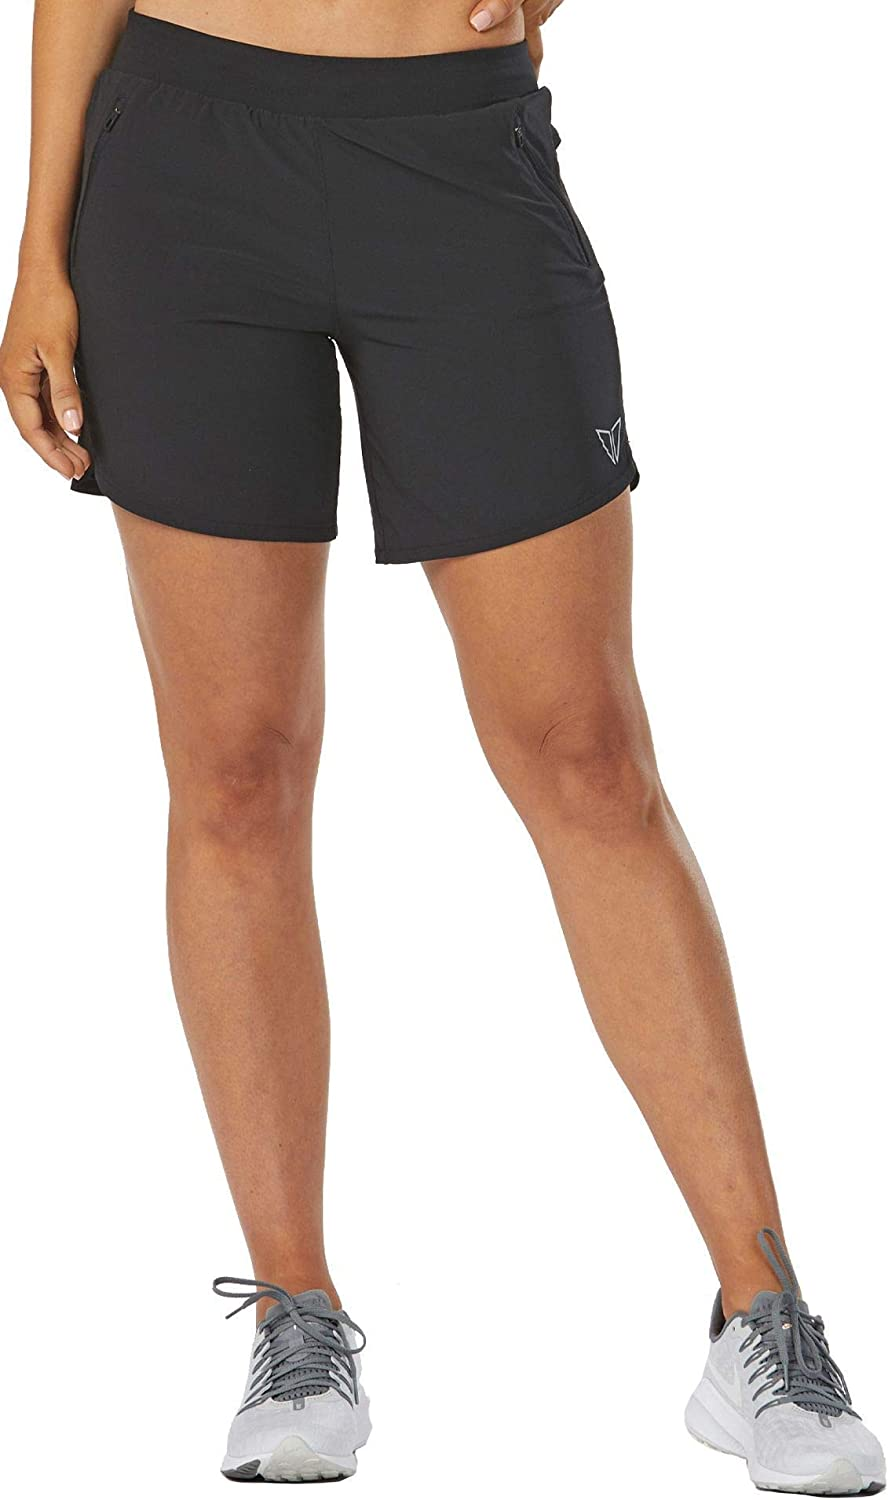 KORSA Women's 7-inch Athletic Workout Popular popular P Zip Shorts Multiple with security